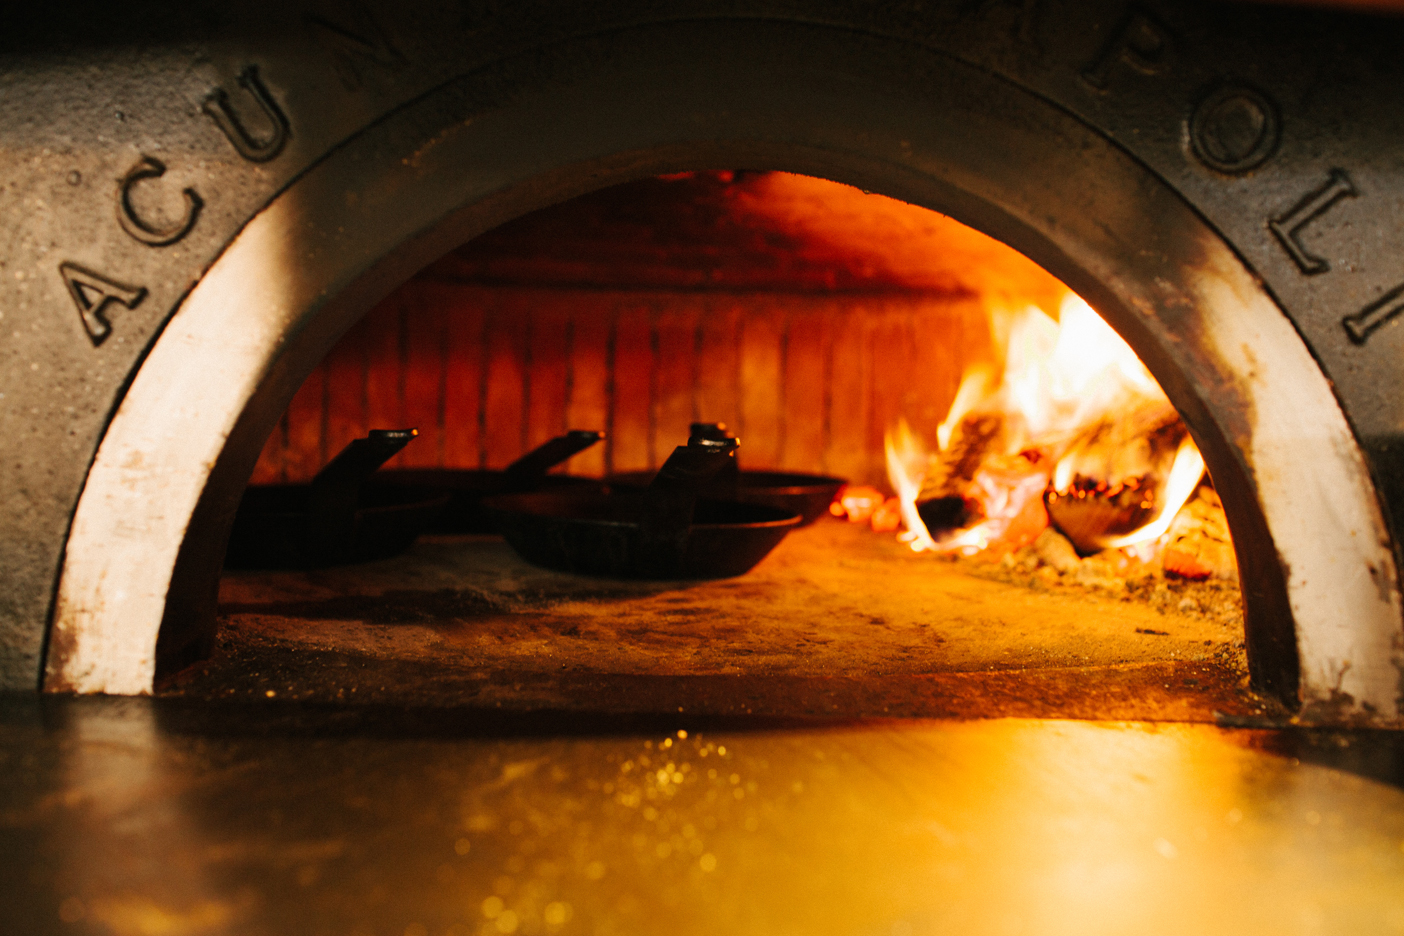 The Oyster bar at The Optimist | Smith Hanes. oven detail